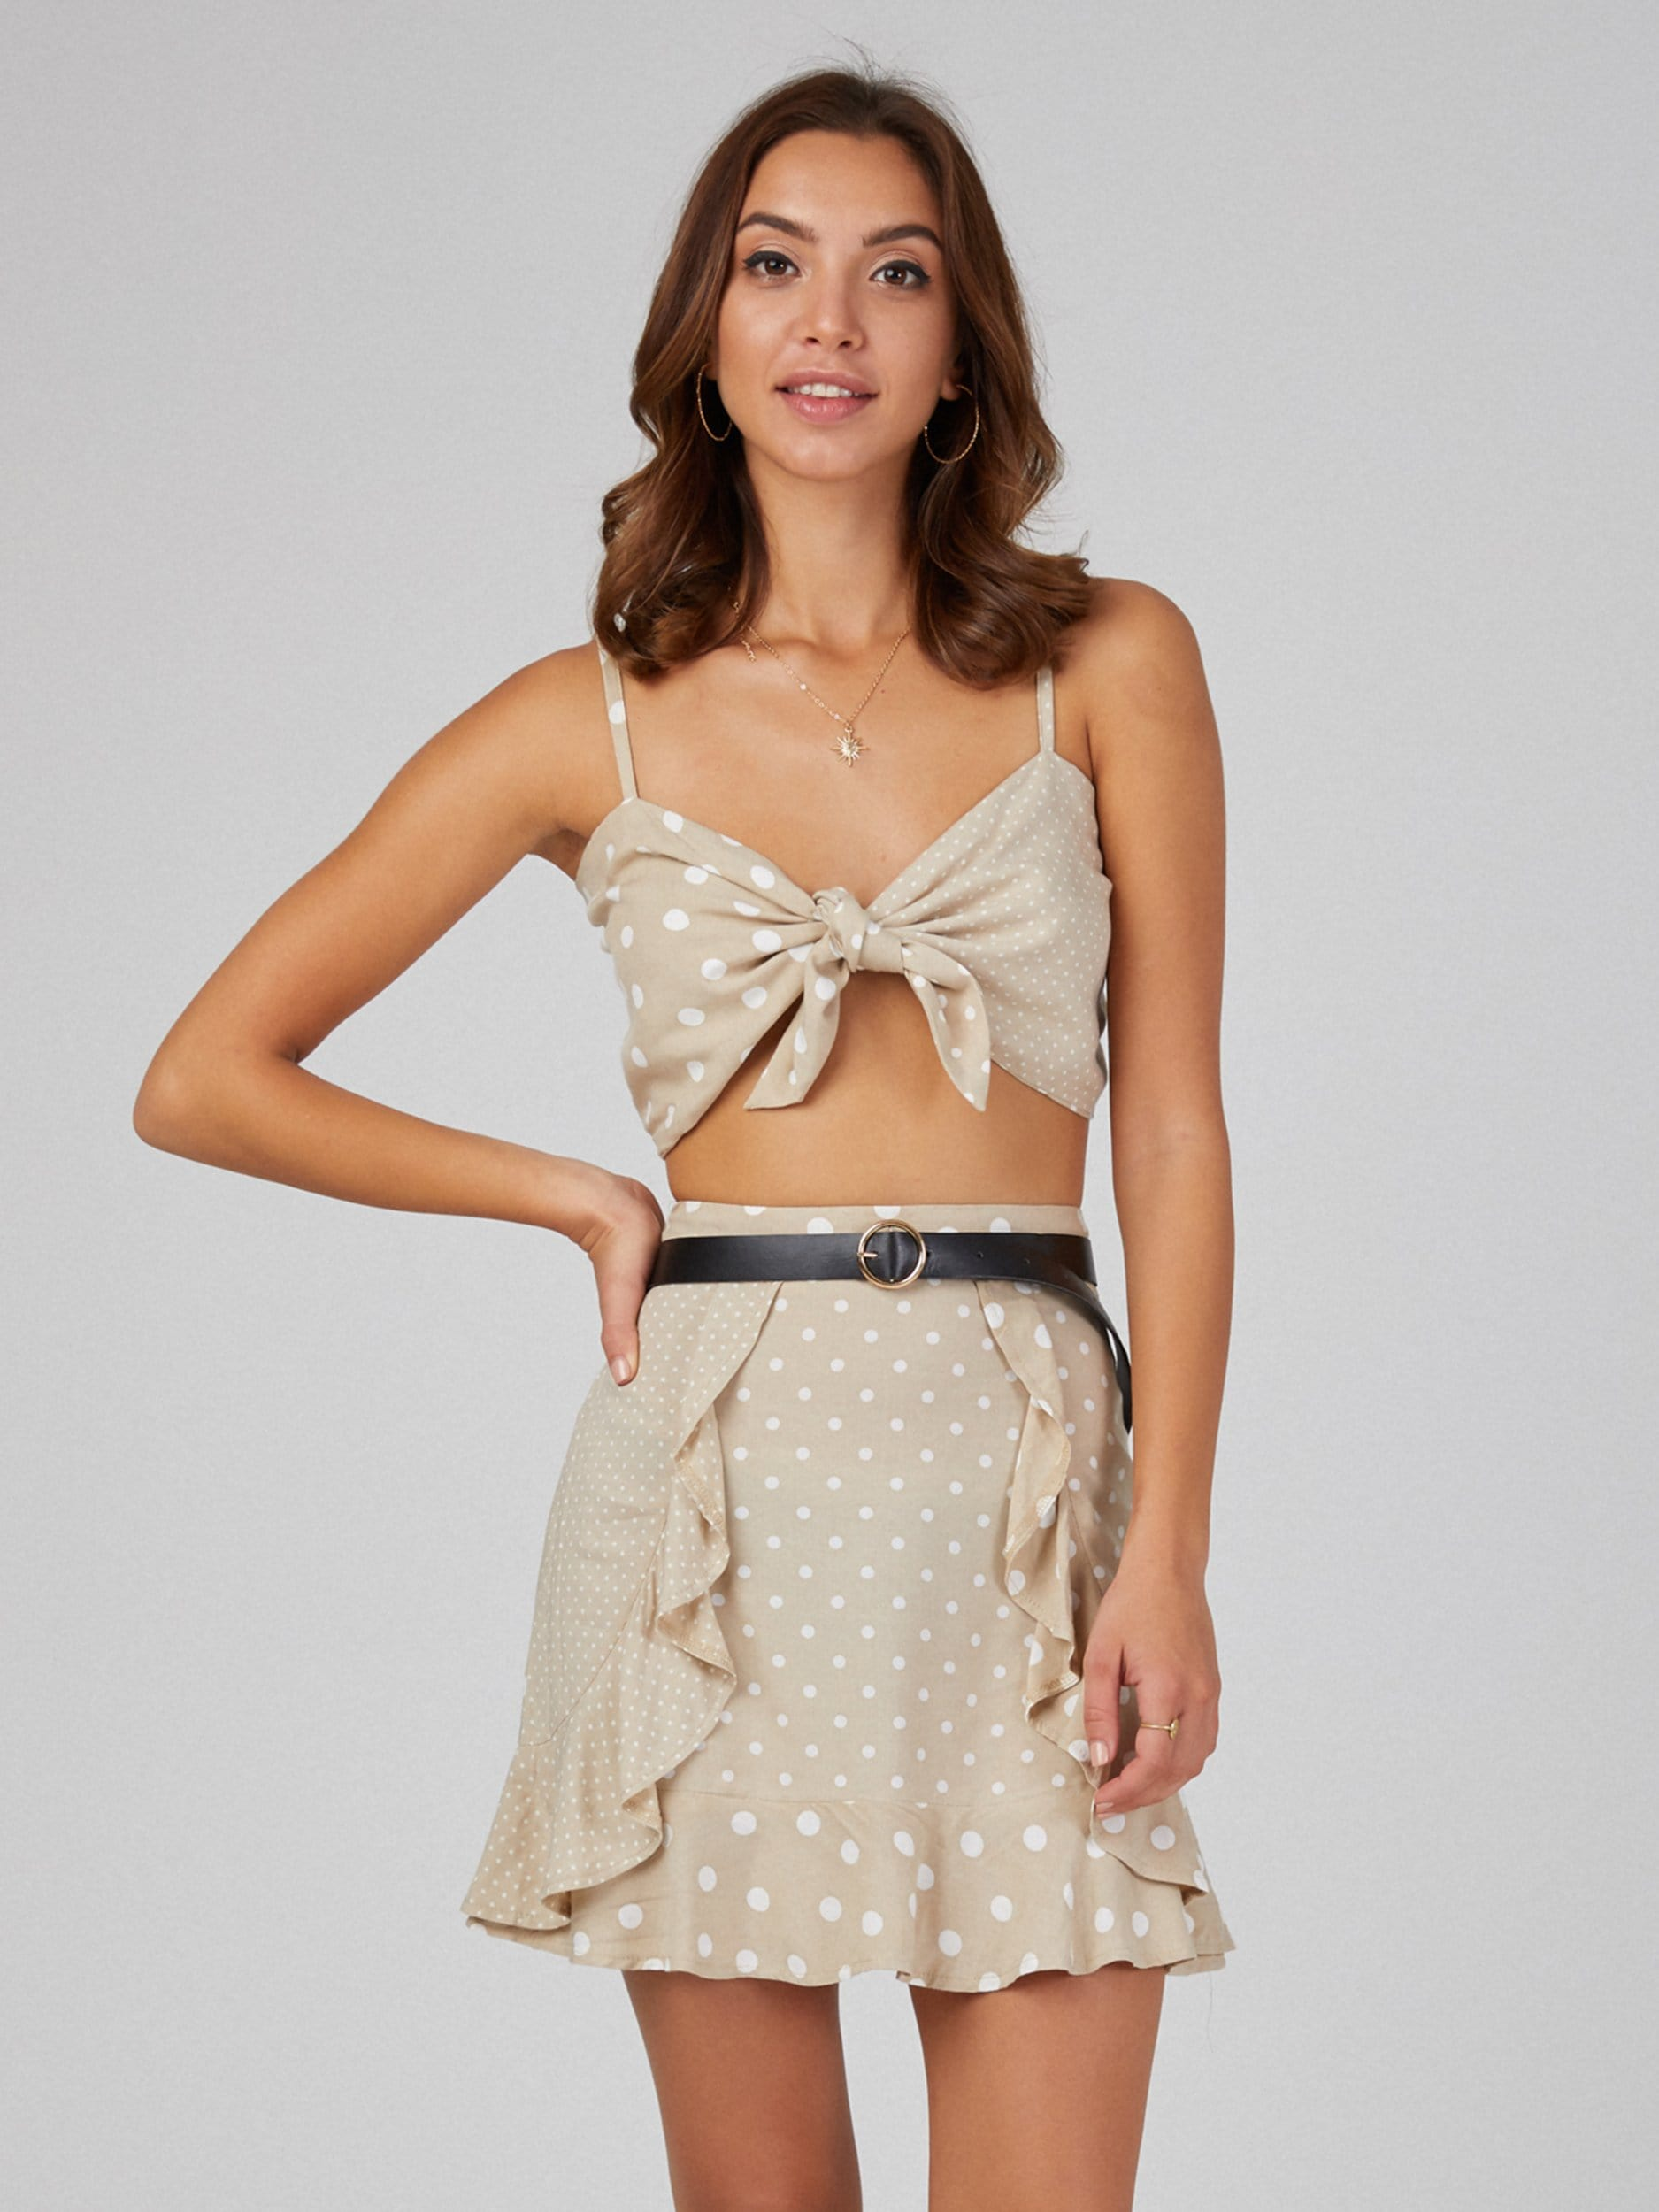 Brooke Skirt - Skirt - LOST IN PARADISE